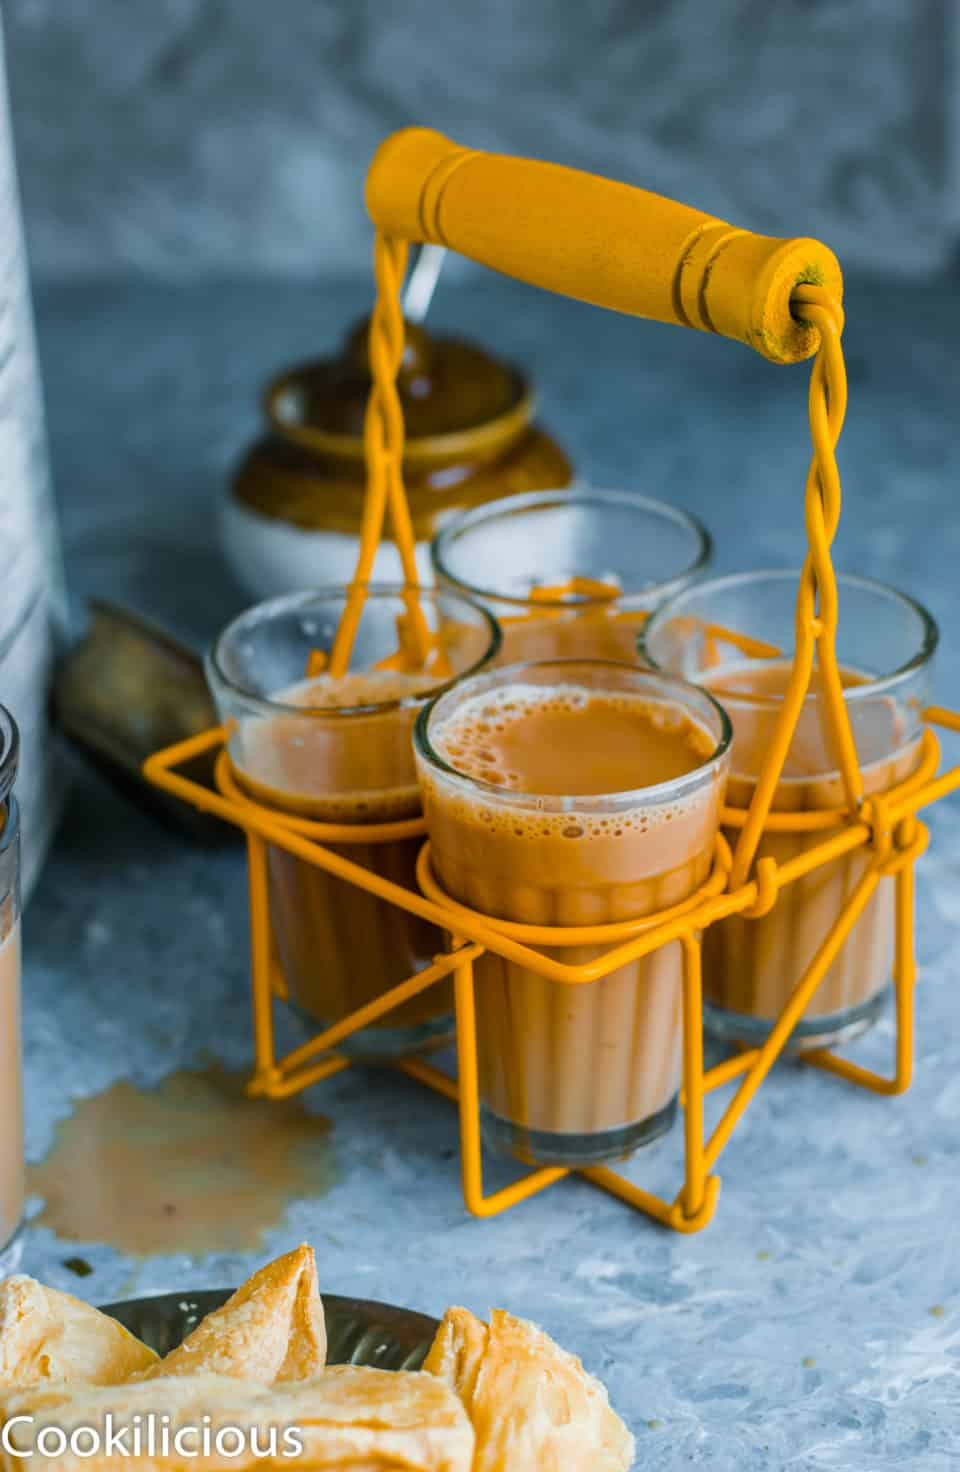 4 cups of masala chai resting in a chai stand